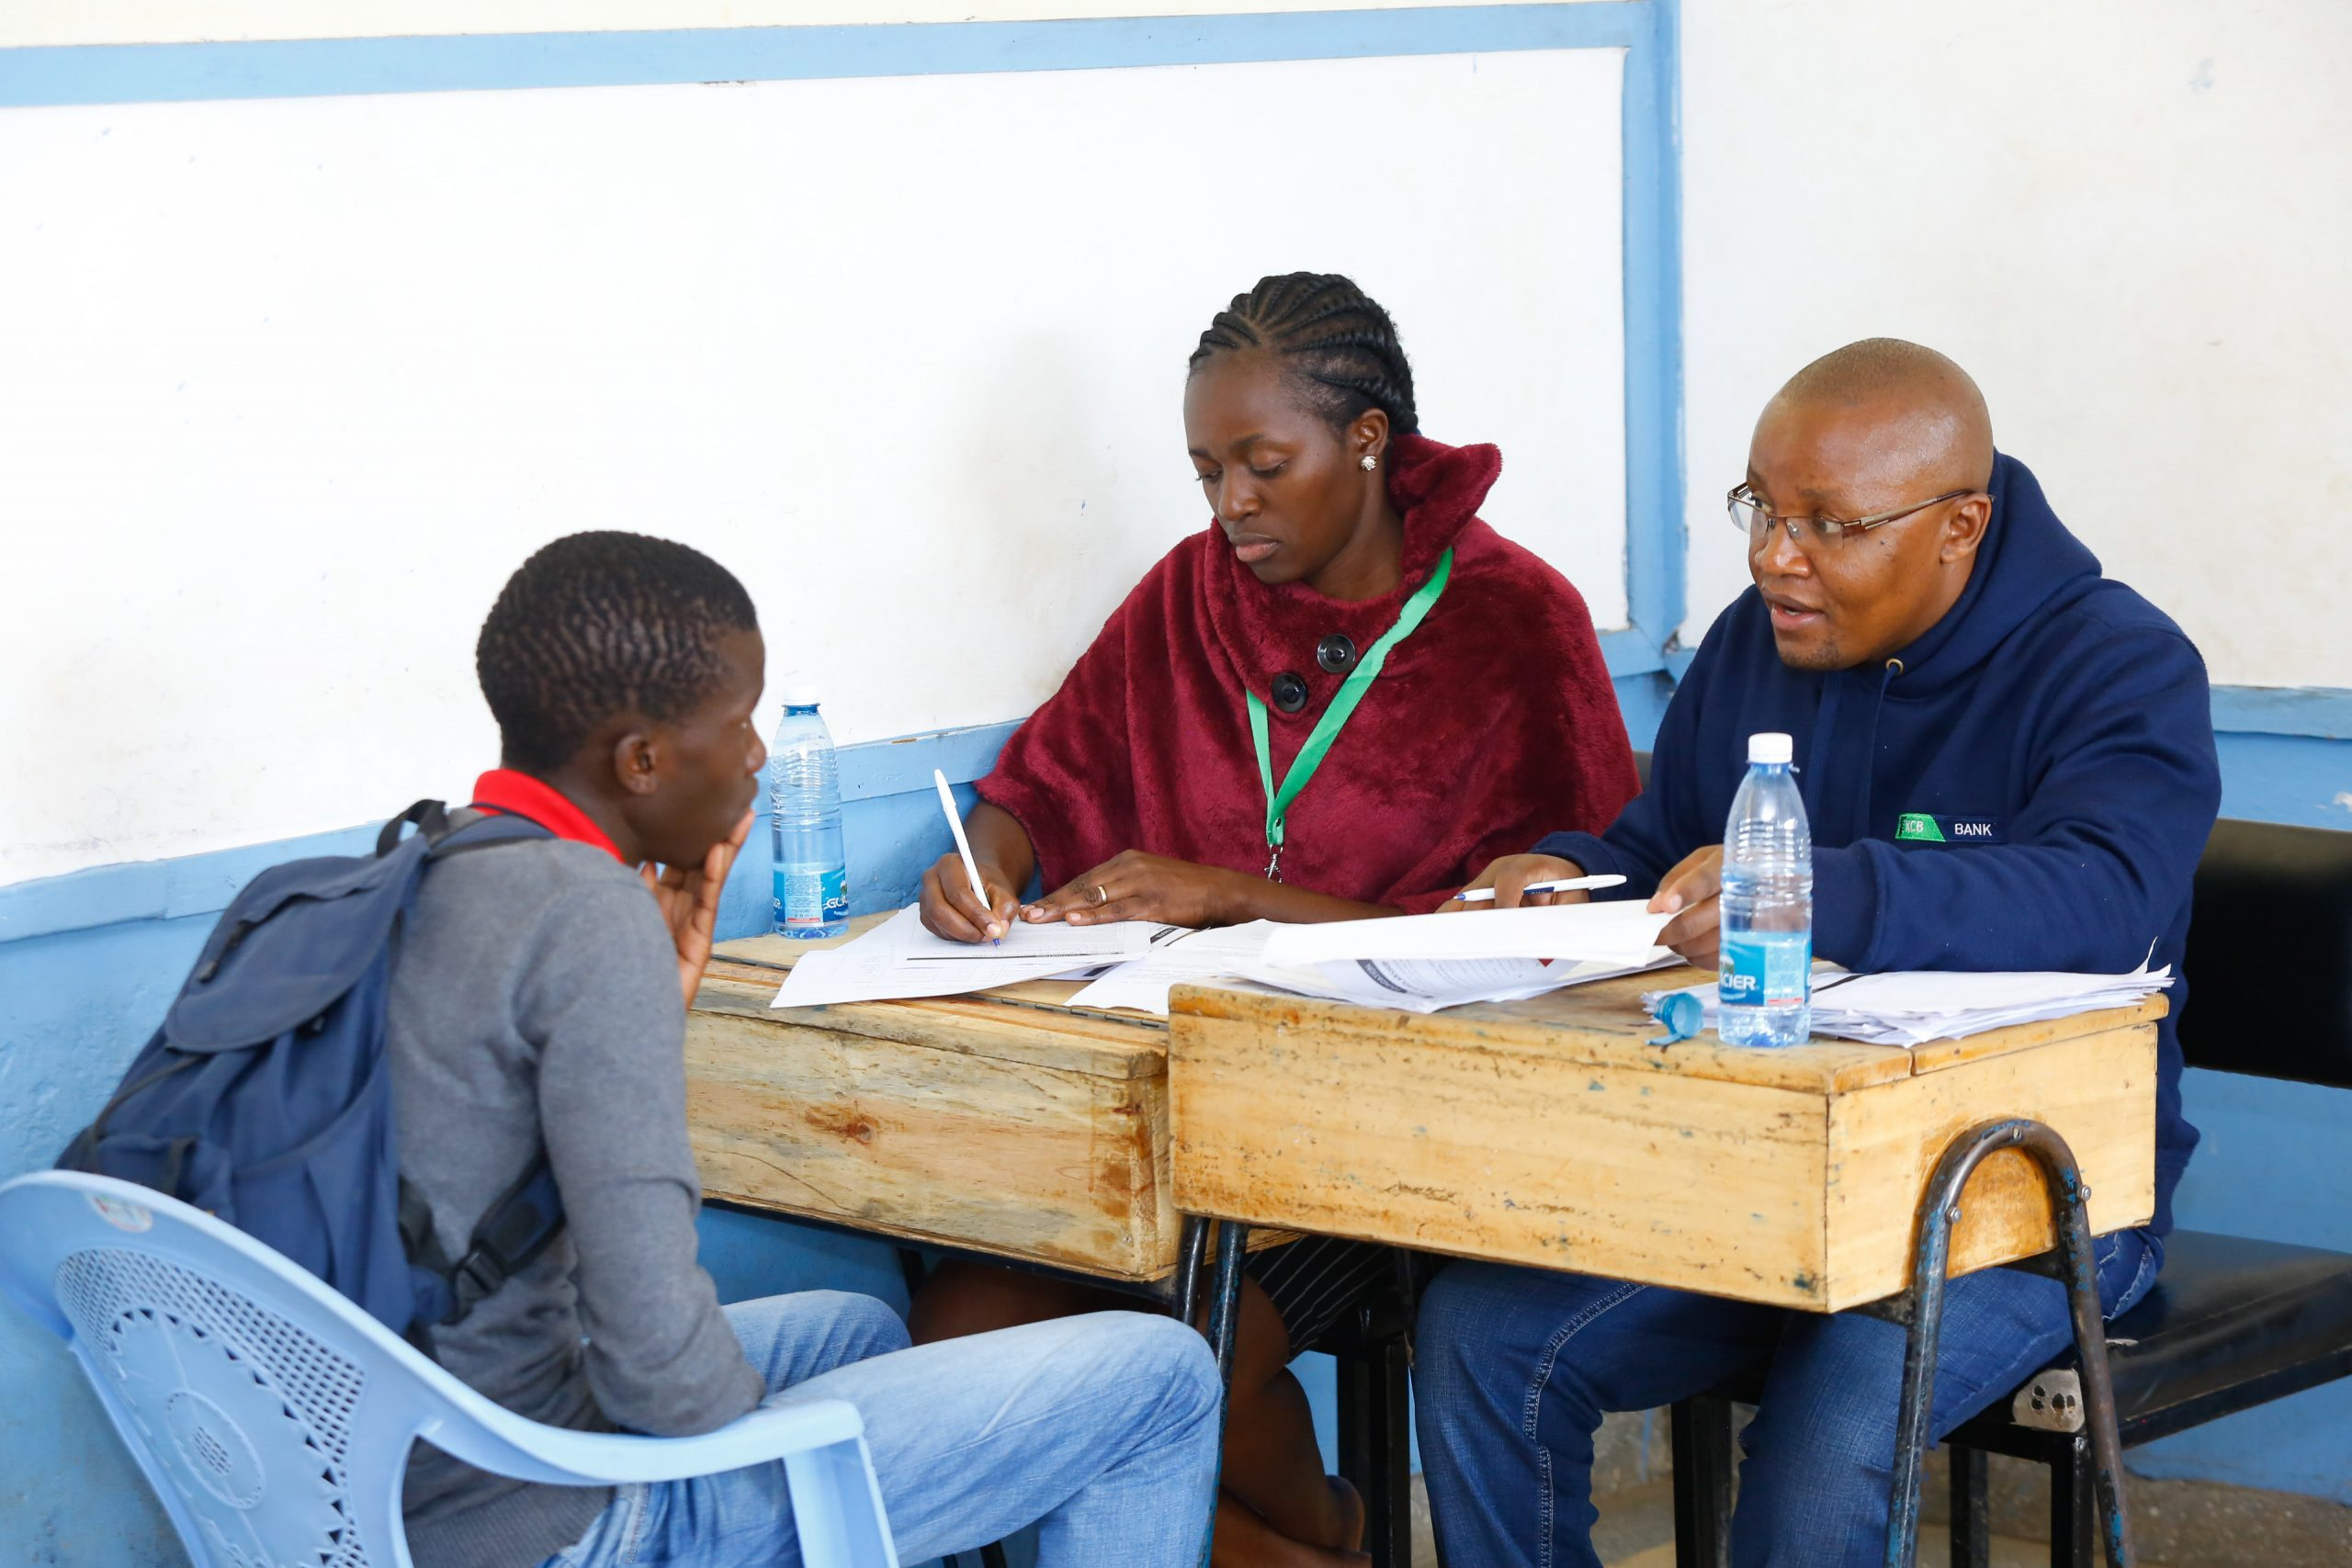 KCB Foundation Programmes Manager Stephen Matee (right) and KCB staff Velda Nasimiyu conducting an interview with one of the applicants for the KCB Scholarship Programme at Moi Avenue Primary School in Nairobi. www.businesstoday.co.ke